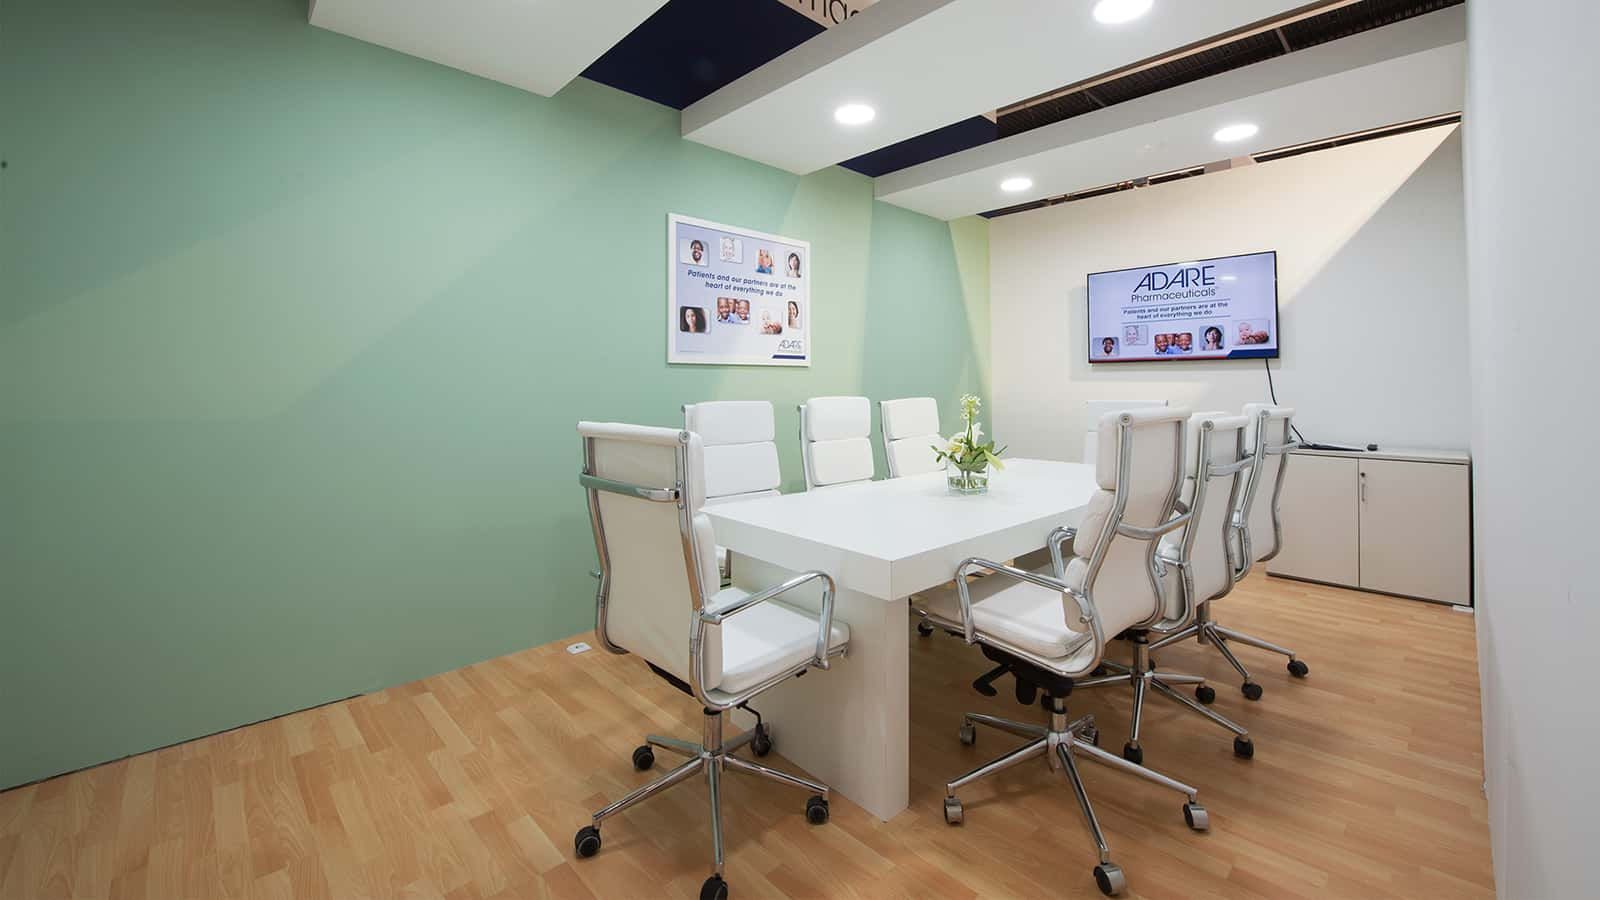 Meeting room at Adare Pharmaceuticals CPhI Spain 2016 experience.